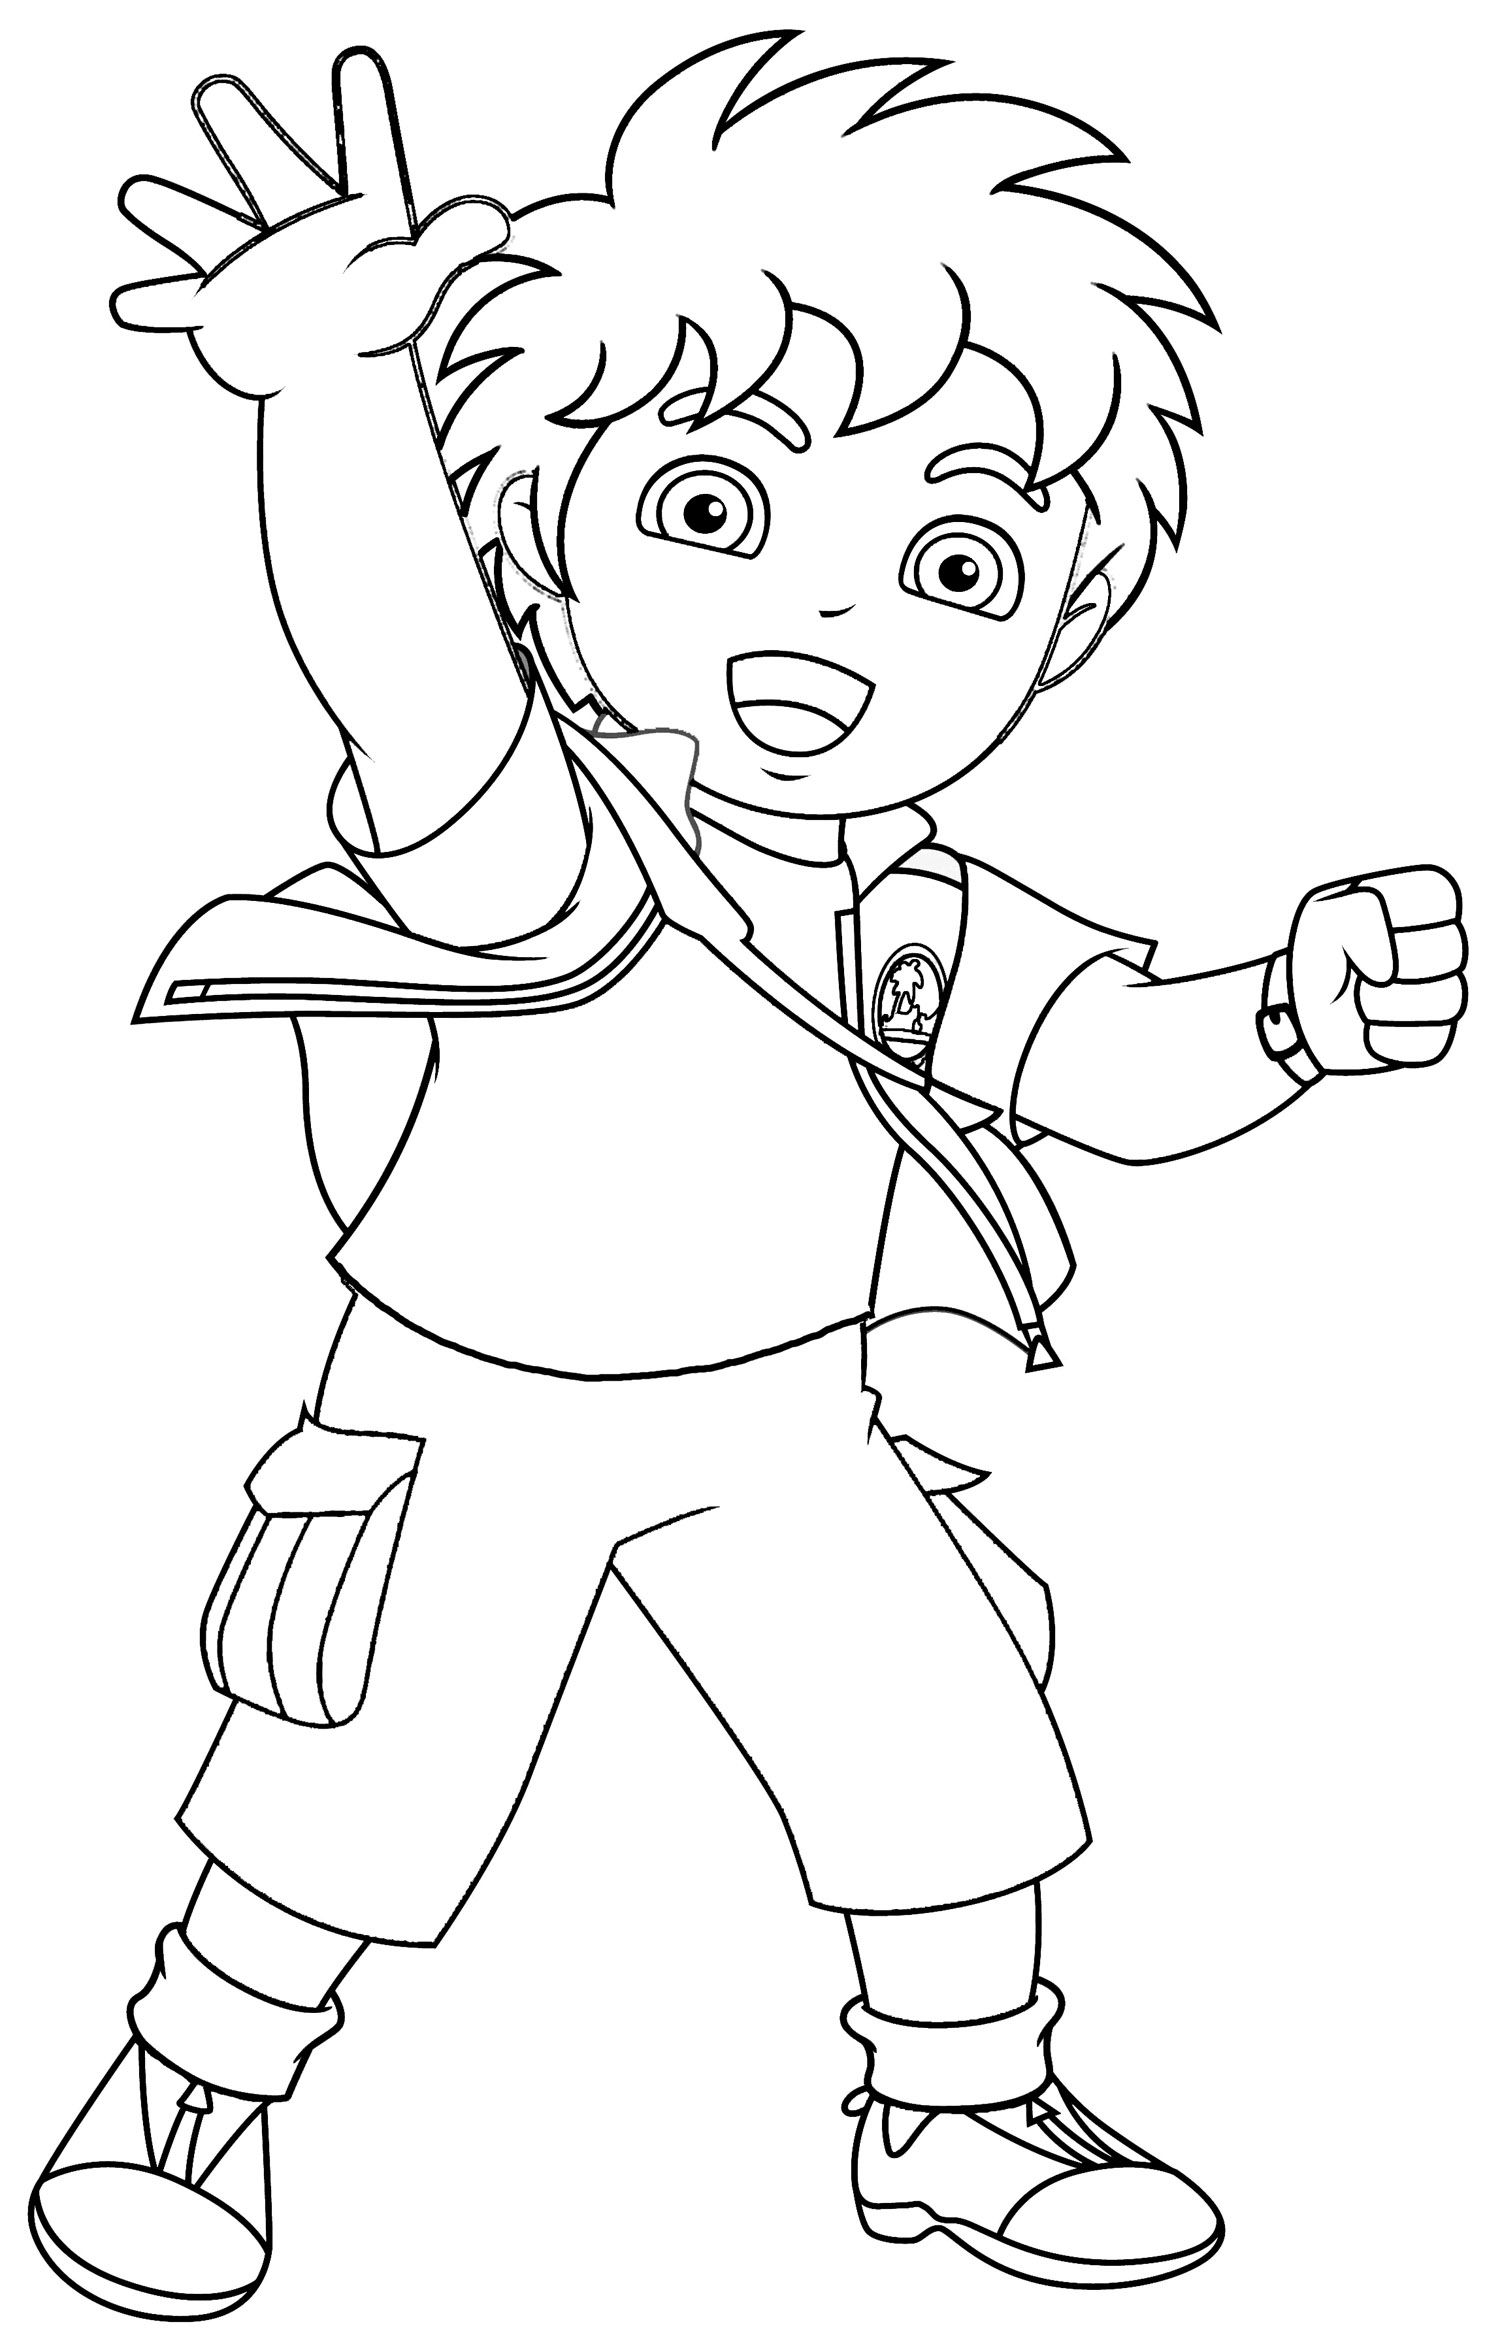 Nick jr summer coloring pages -